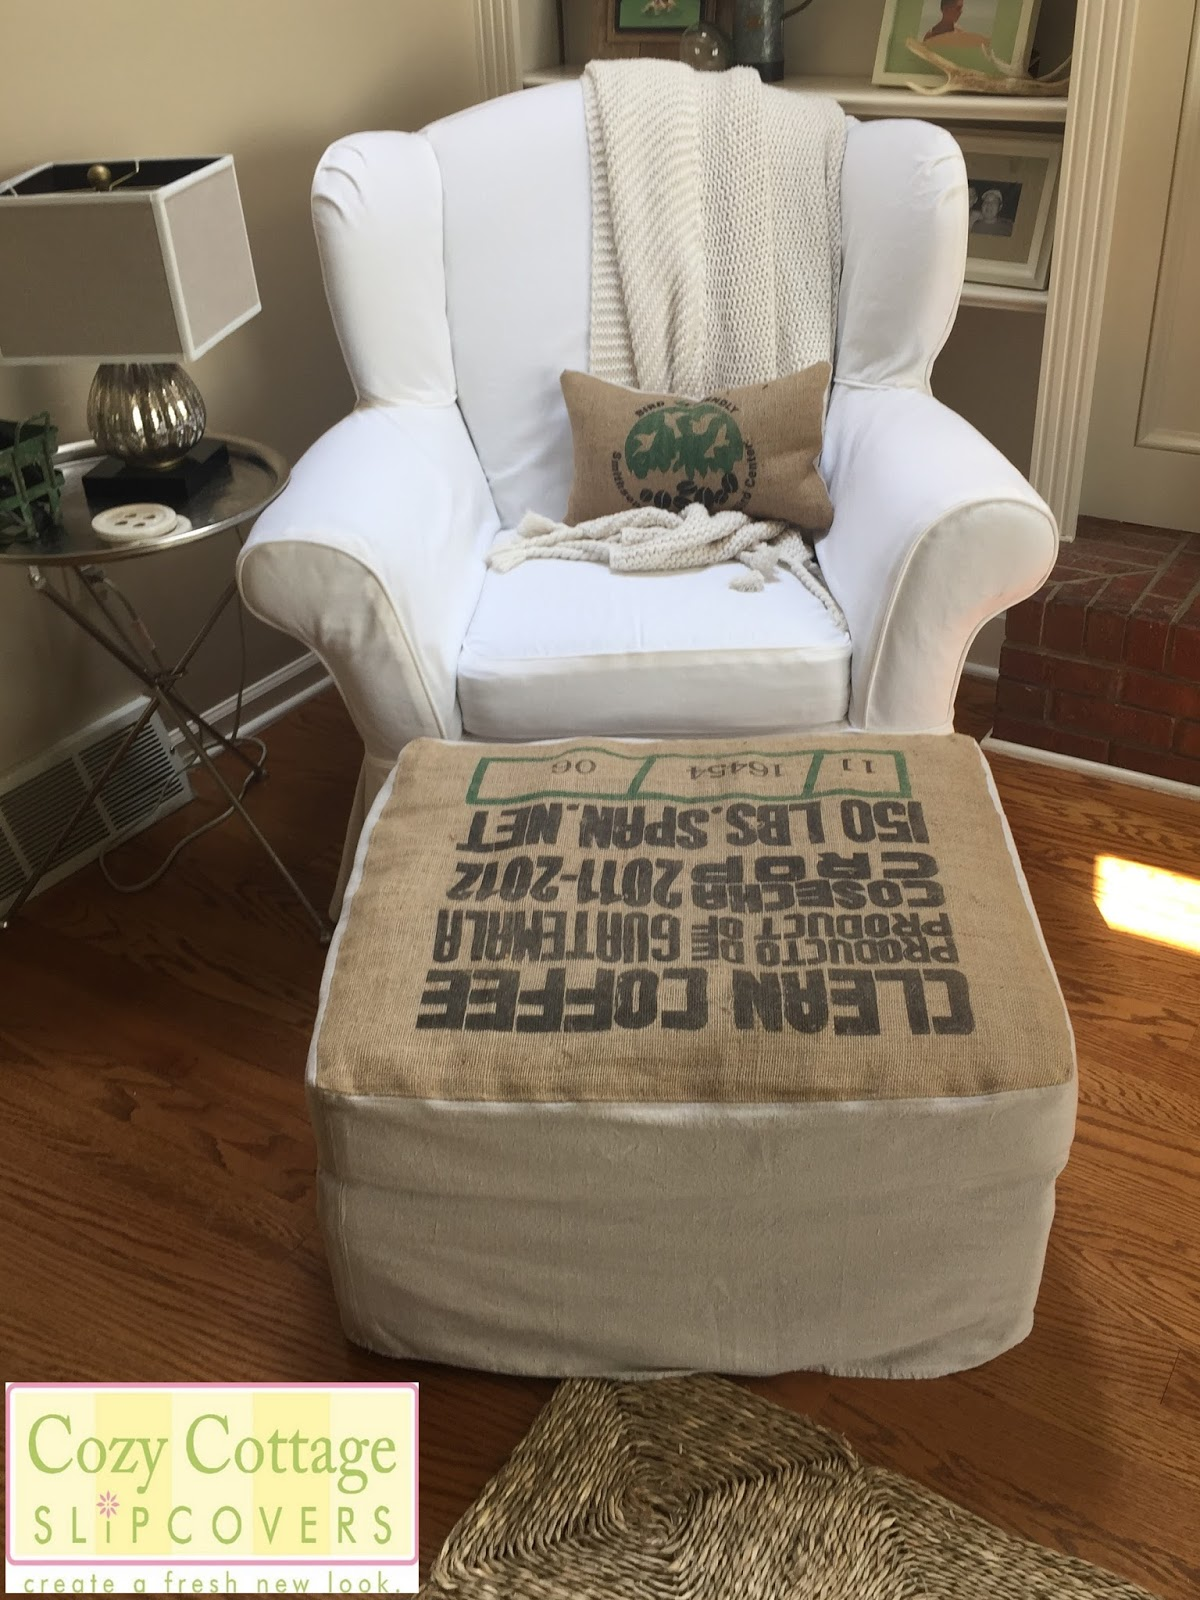 Cozy cottage slipcovers new office chair slipcovers - Cozy Cottage Slipcovers New Office Chair Slipcovers 10